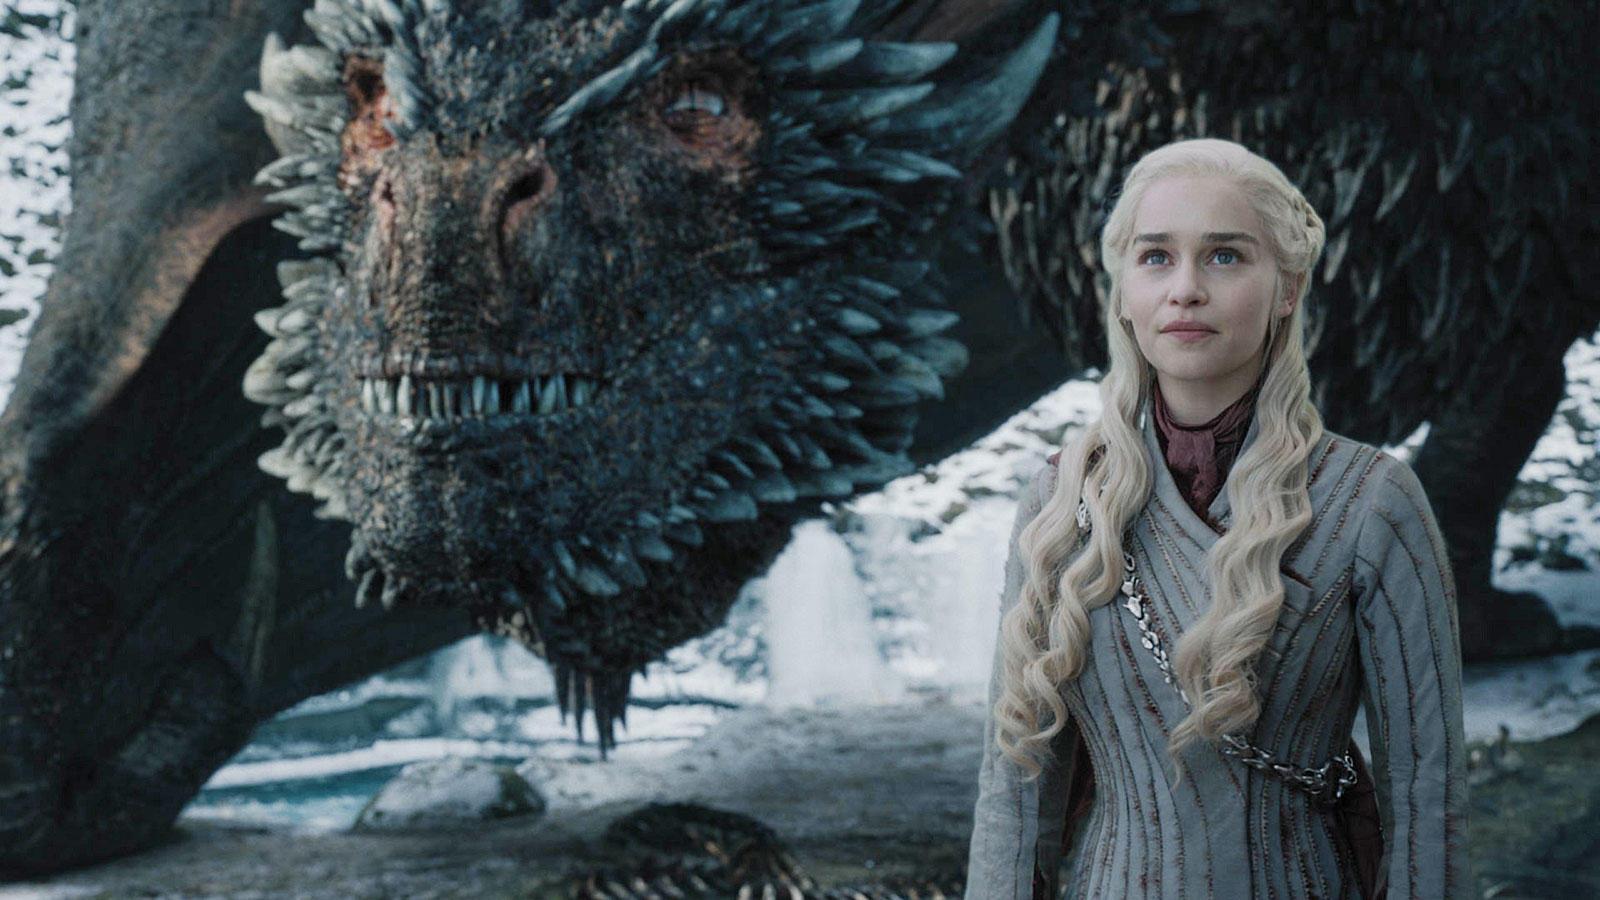 Why companies should embrace cultural phenomena like 'Game of Thrones' in the workplace